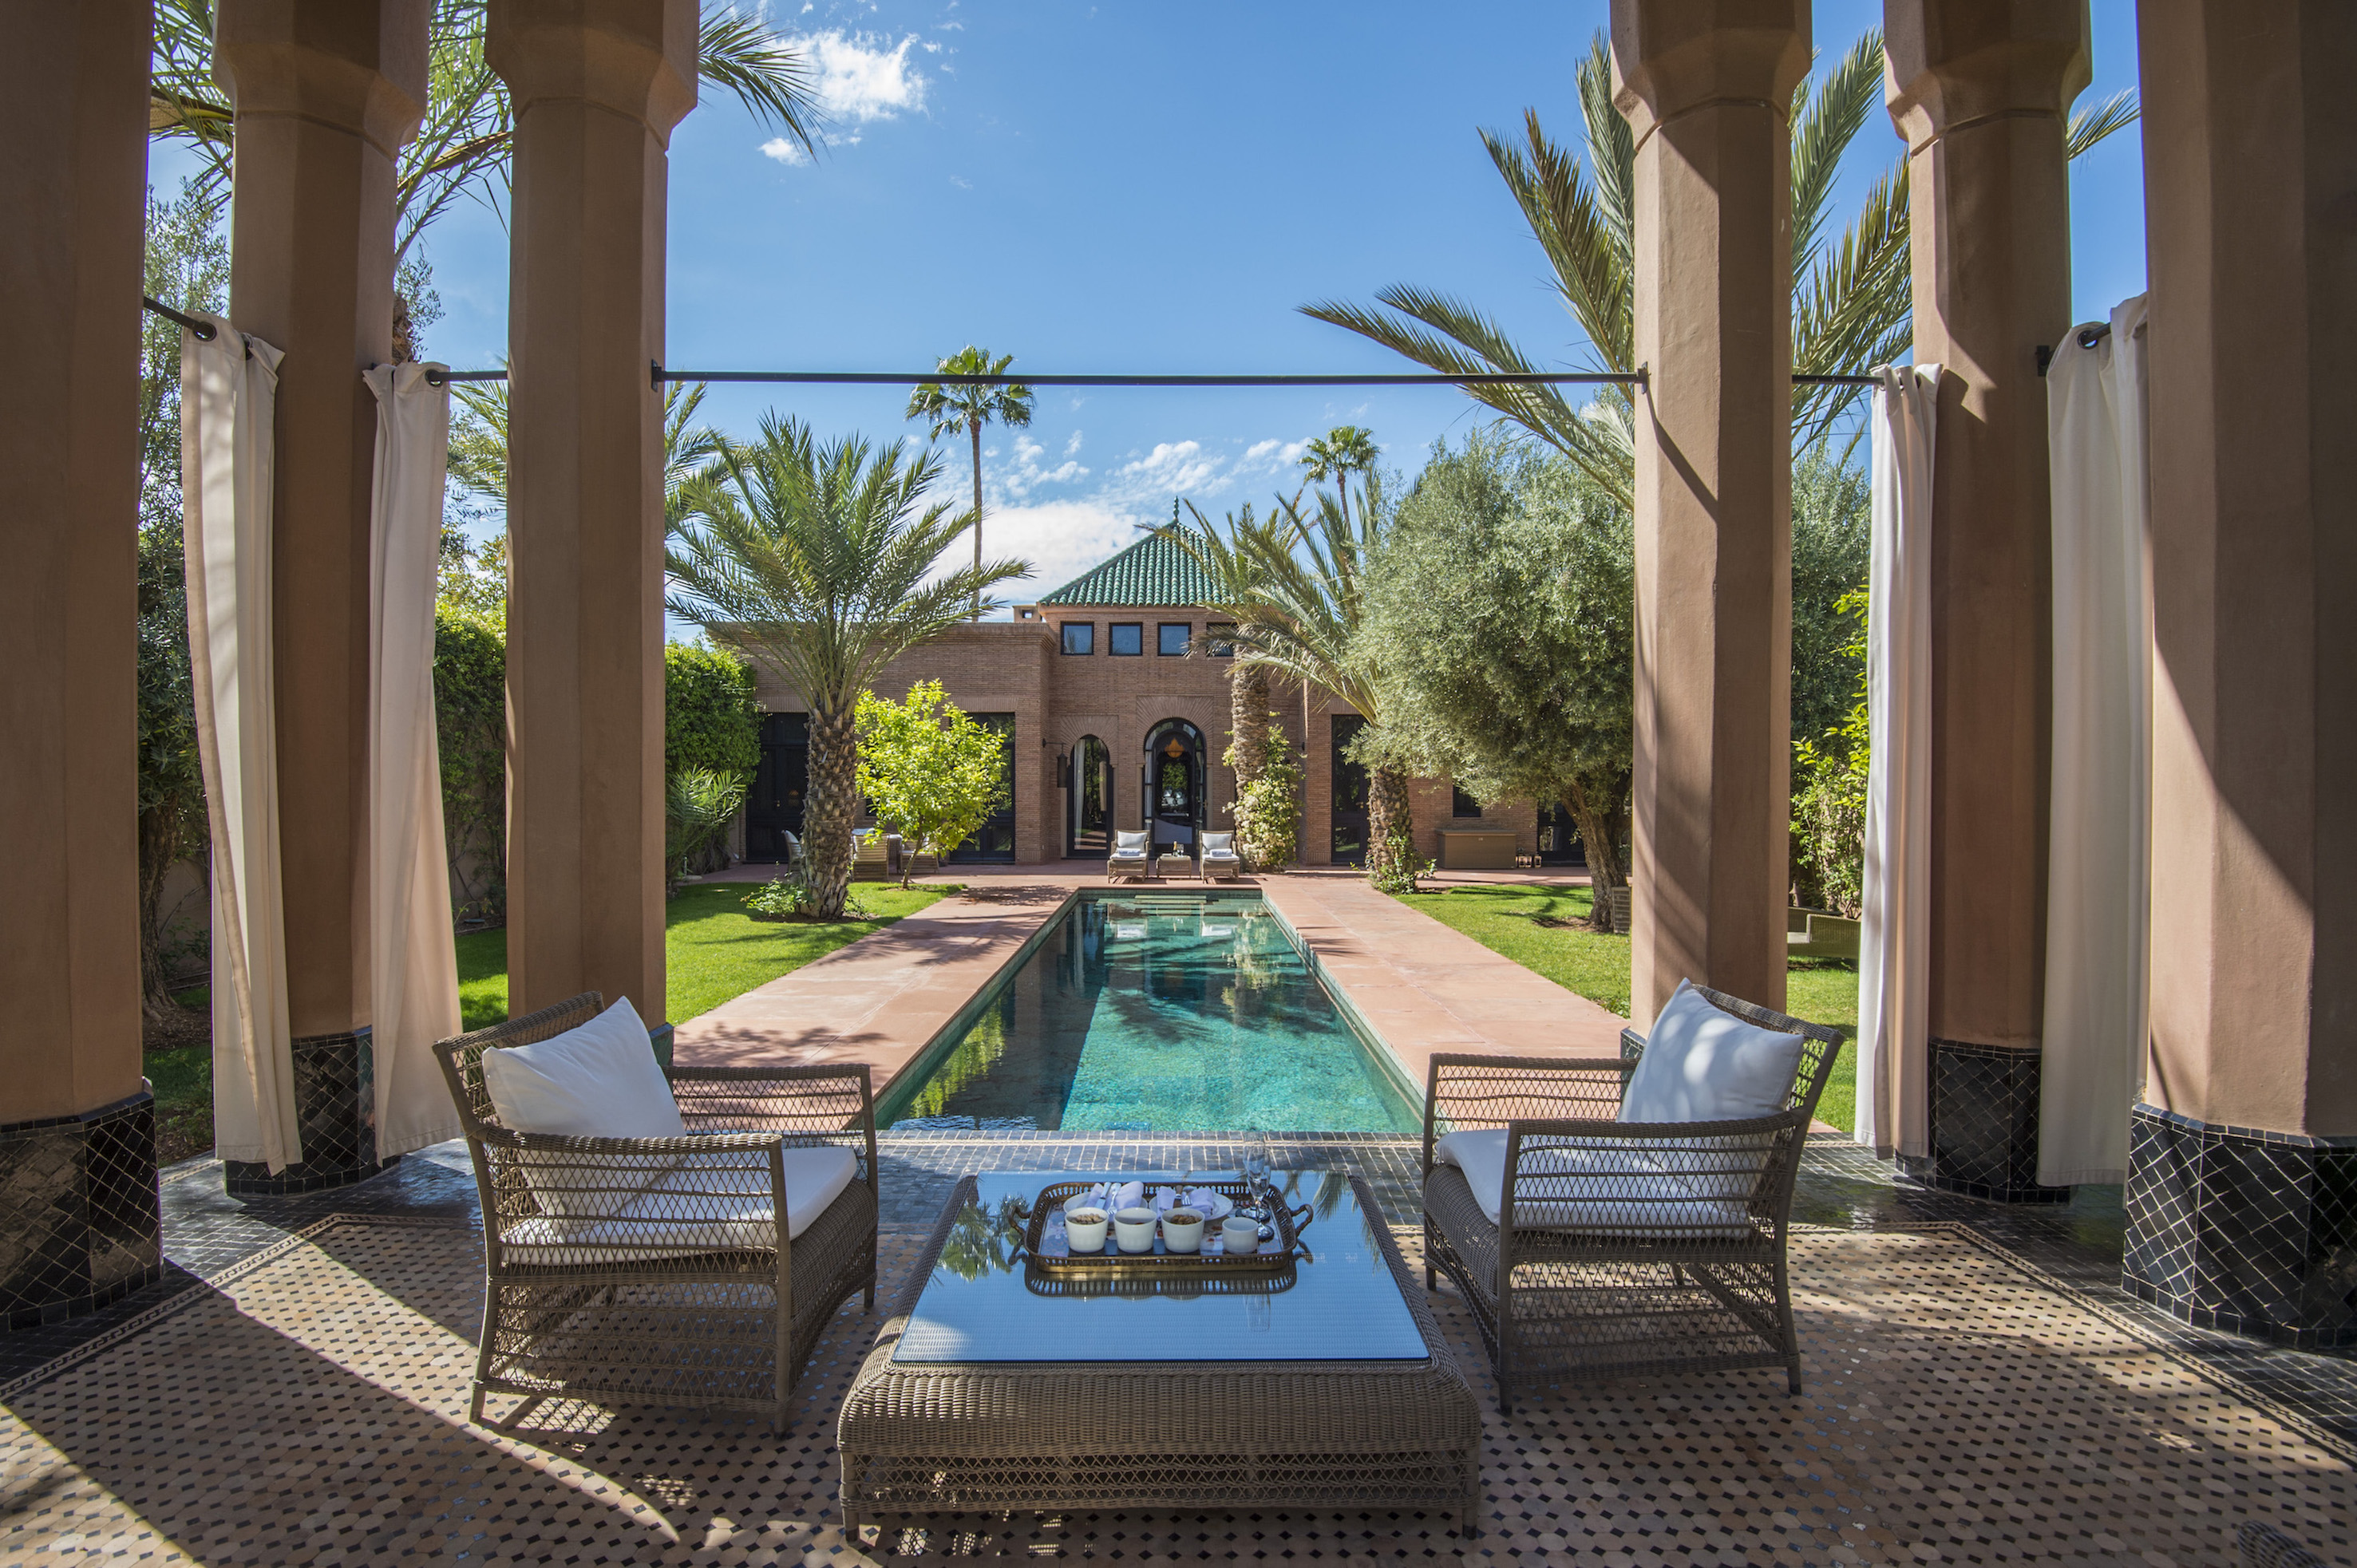 Self isolate under the warm sun of Marrakesh in one of Selman's private villas, which feature private pools and gardens.